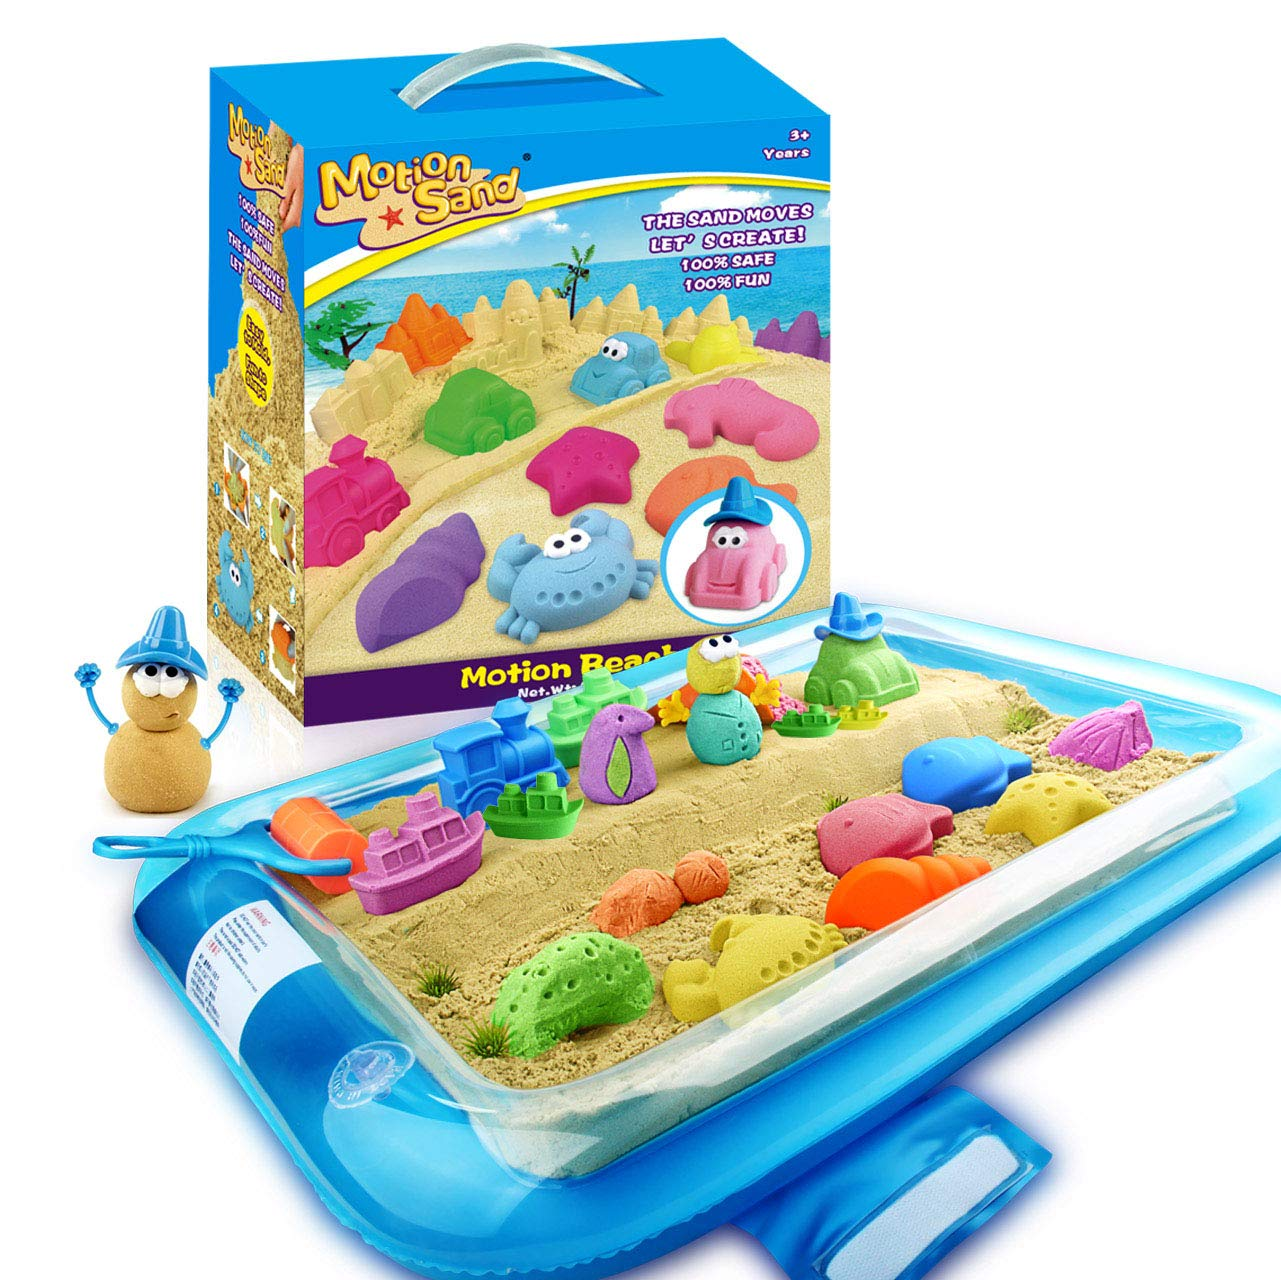 eff25e583f Amazon.com: Motion Sand, 2.65lbs Play Sand, Motion Beach Mold Kit, Play Sand  Set with 20 Pcs Sand Molds and 1 Sand Tray, Non-Toxic Sand Molding Set for  ...